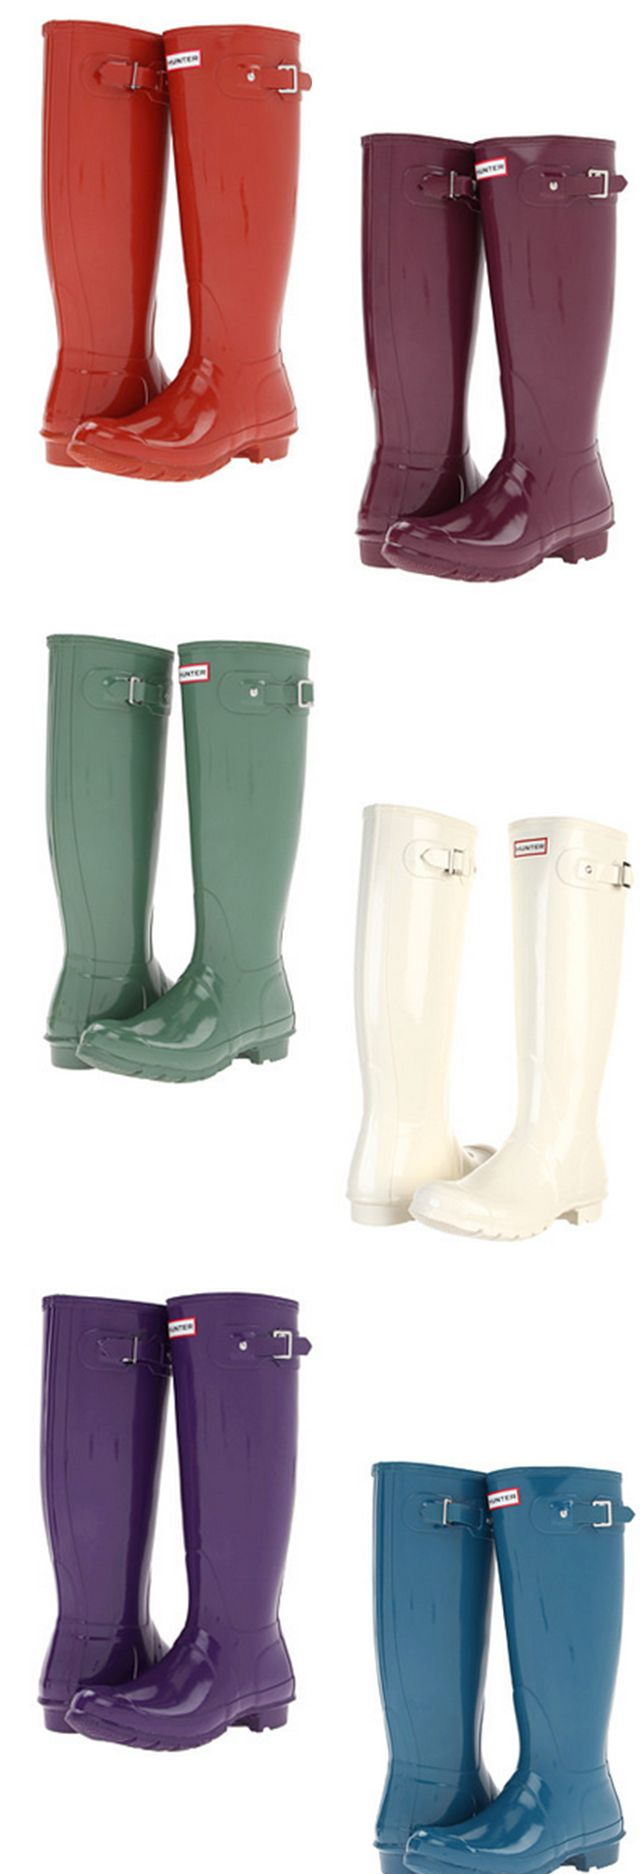 Hunter Original Wellington boots: i'll take a pair in each color, please! SIZE 8